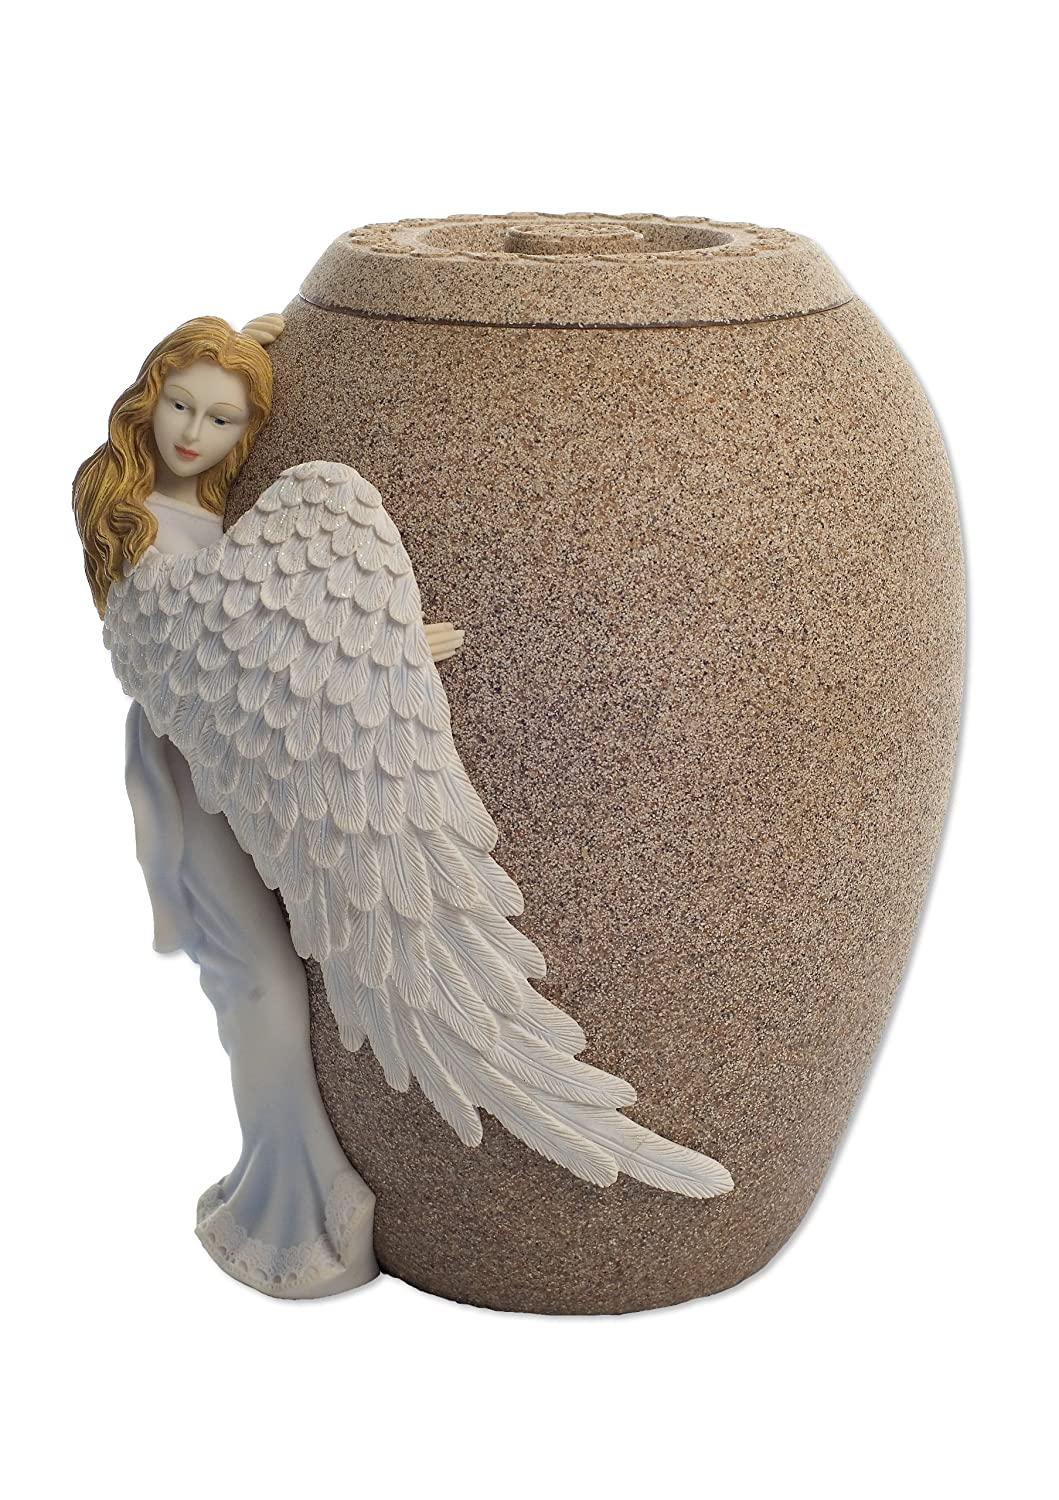 AngelStar Angel s Embrace Hand-Painted Angel, 10-1 2-Inch, Sandstone Finish, 230 Cubic Inch